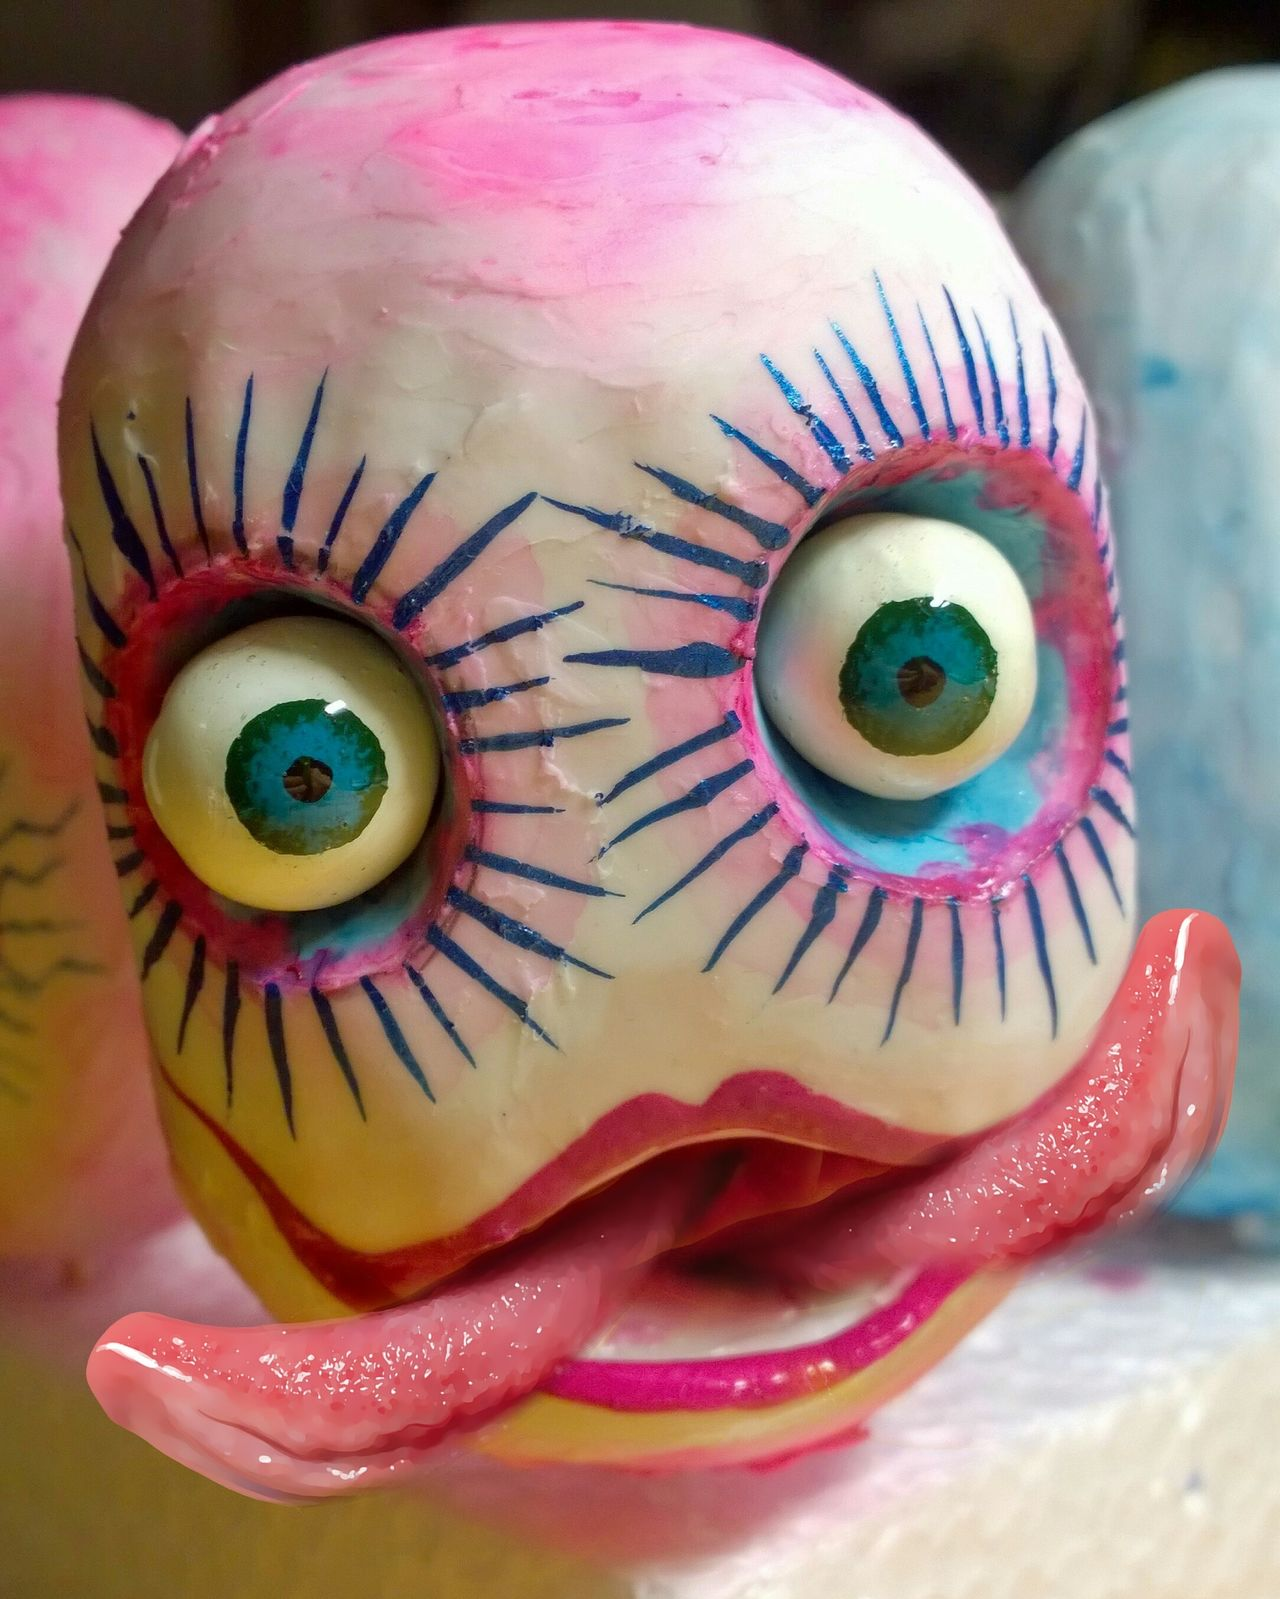 Art Sculpture Sculptures Arts Culture And Entertainment Mixed Media Painting Close-up Pink Color Doll Multi Colored Dolls Head